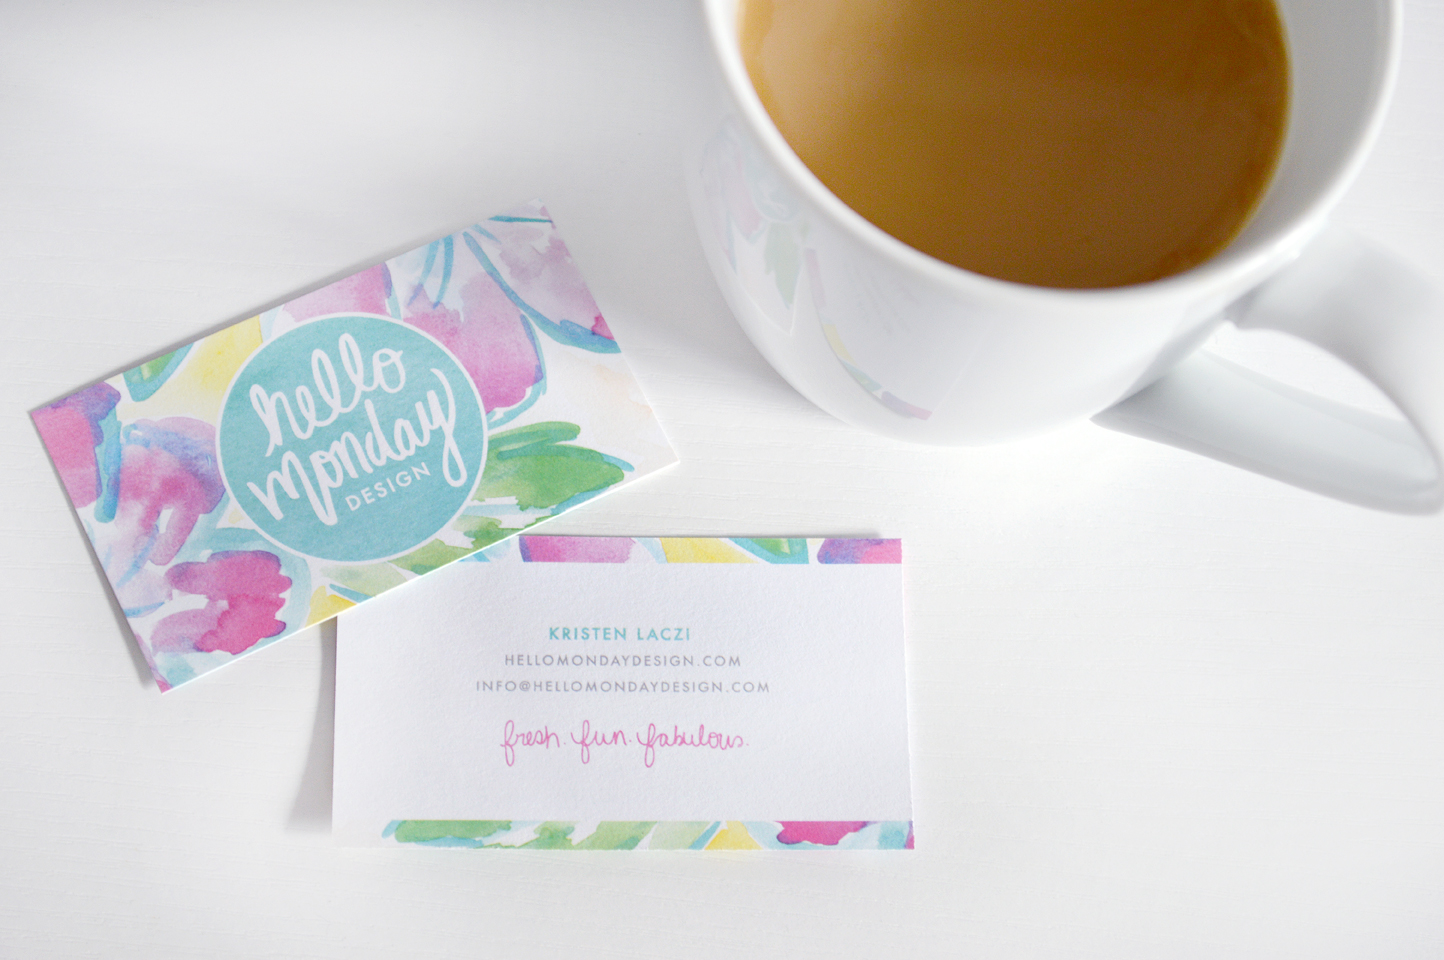 Hello Monday Design - New Business Cards